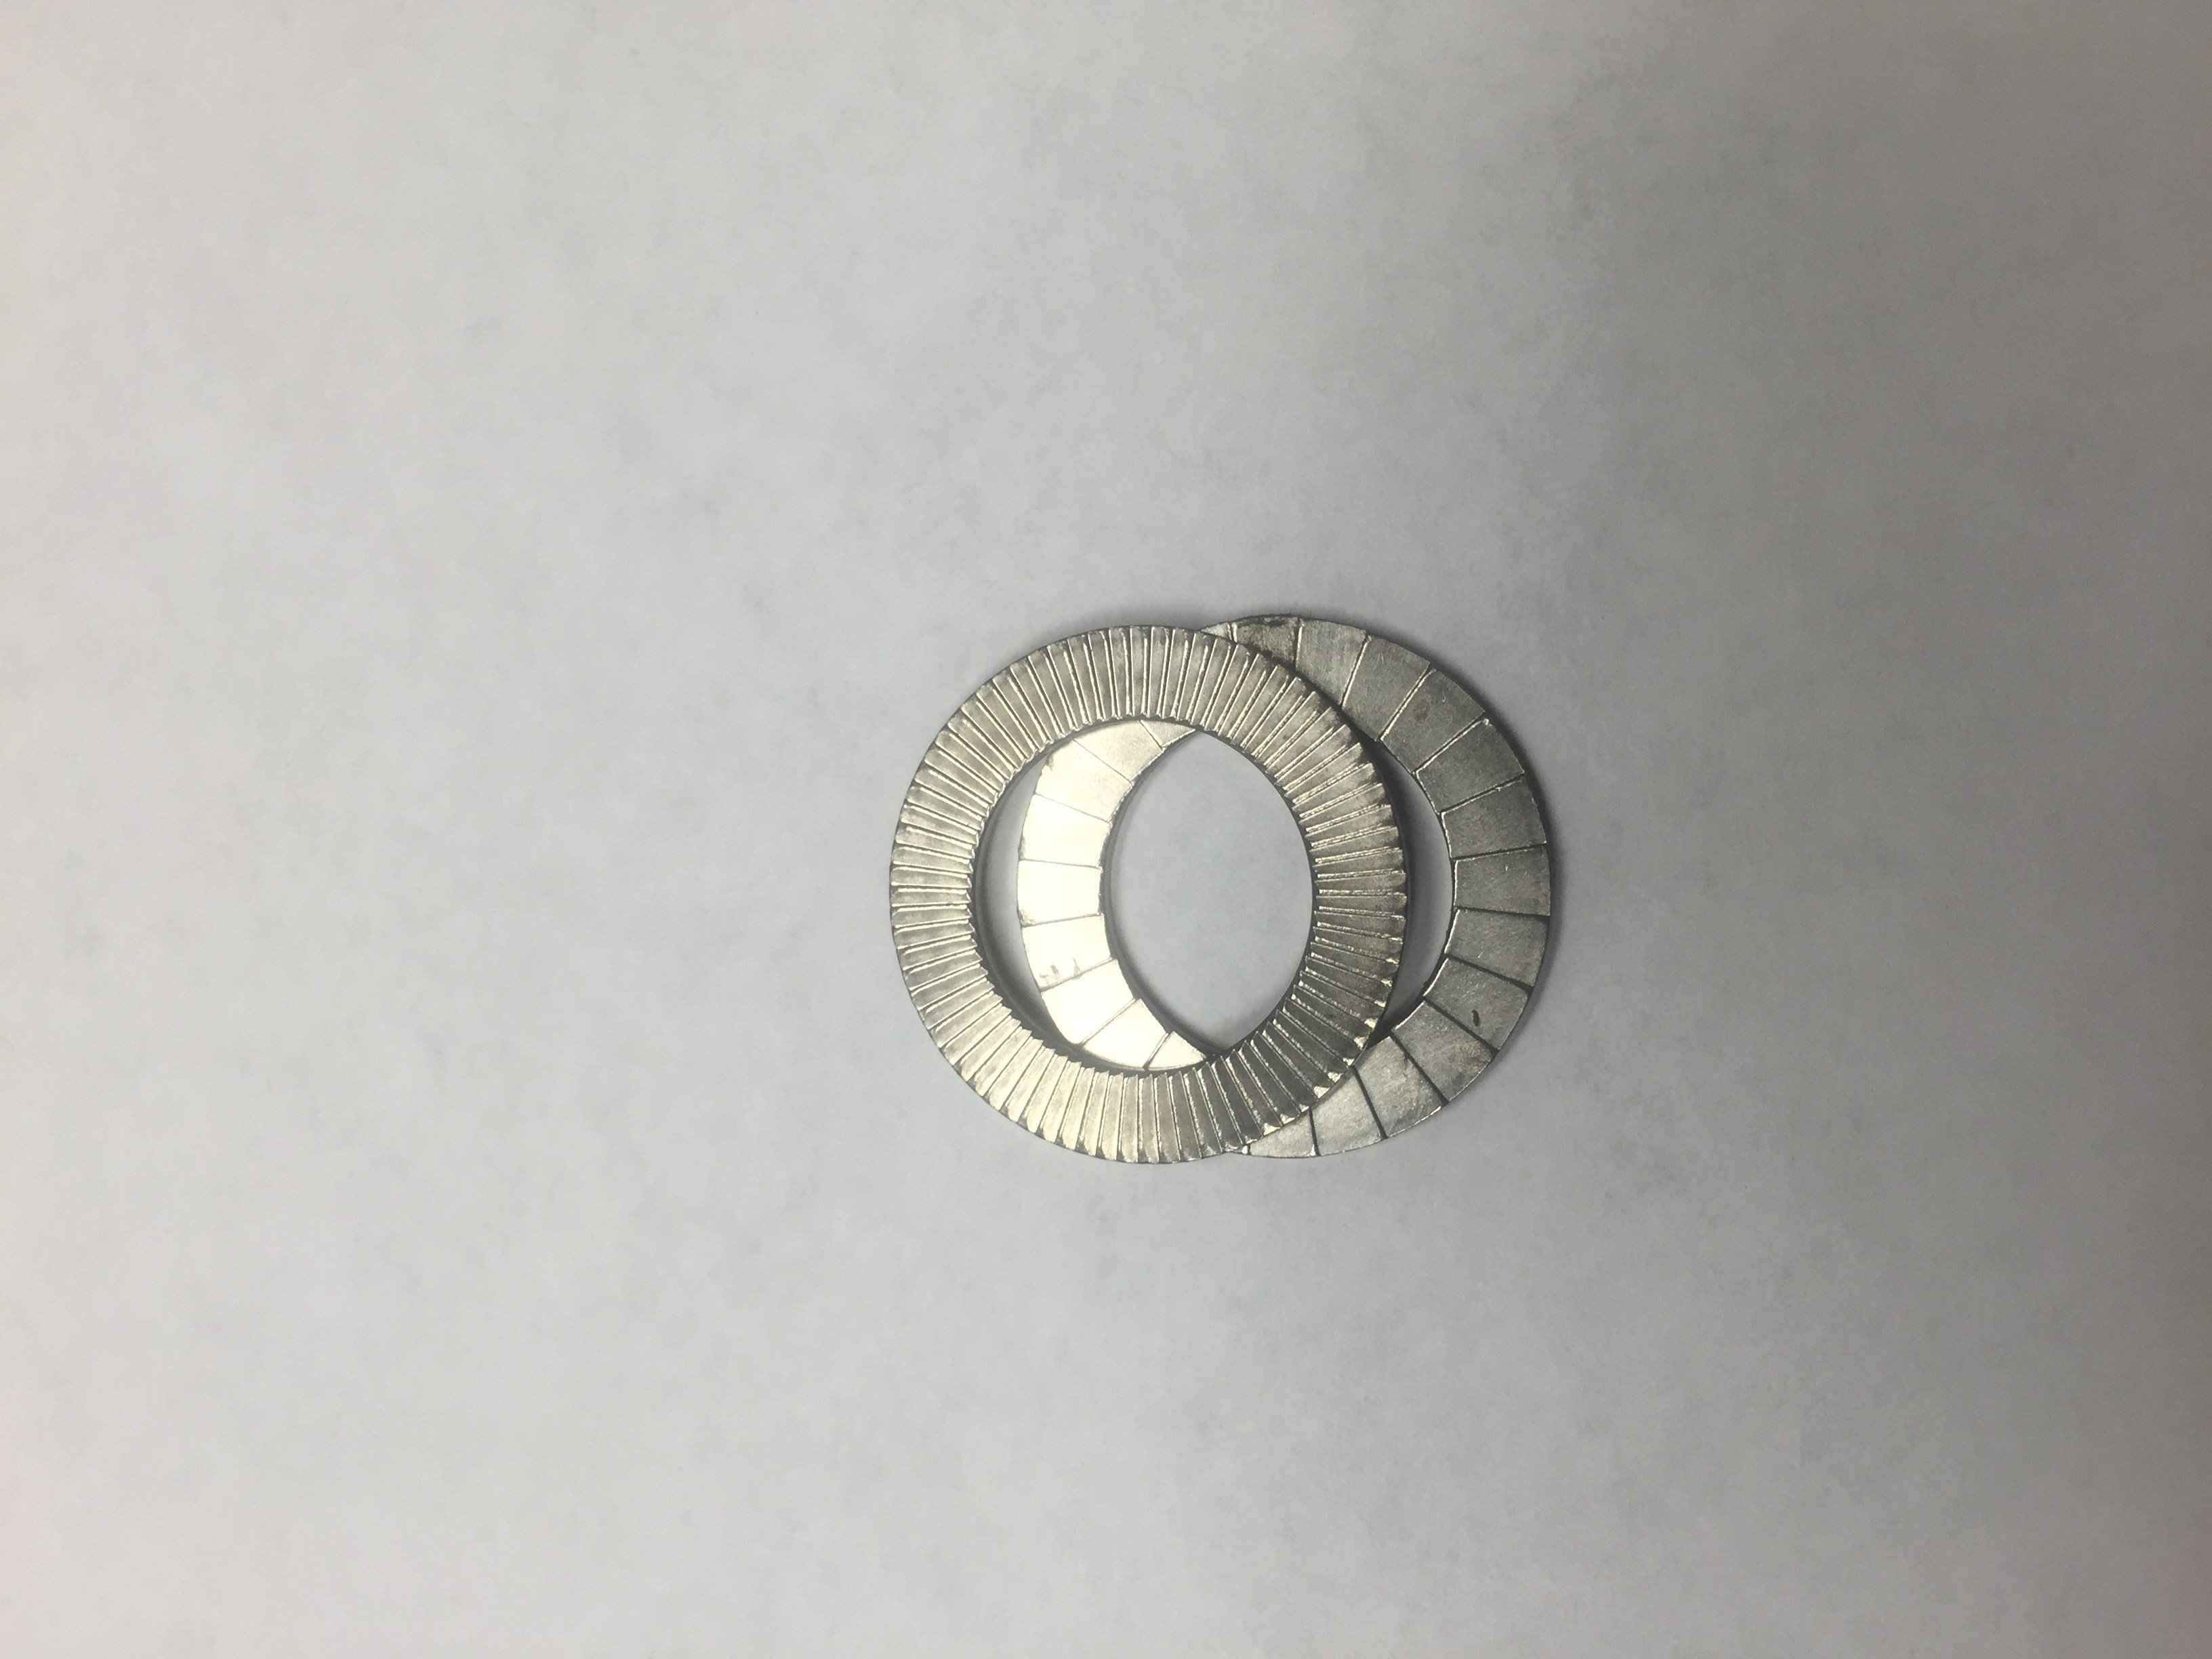 5/16 316 STAINLESS STEEL NORD-LOCK WASHER LARGE PATTERN